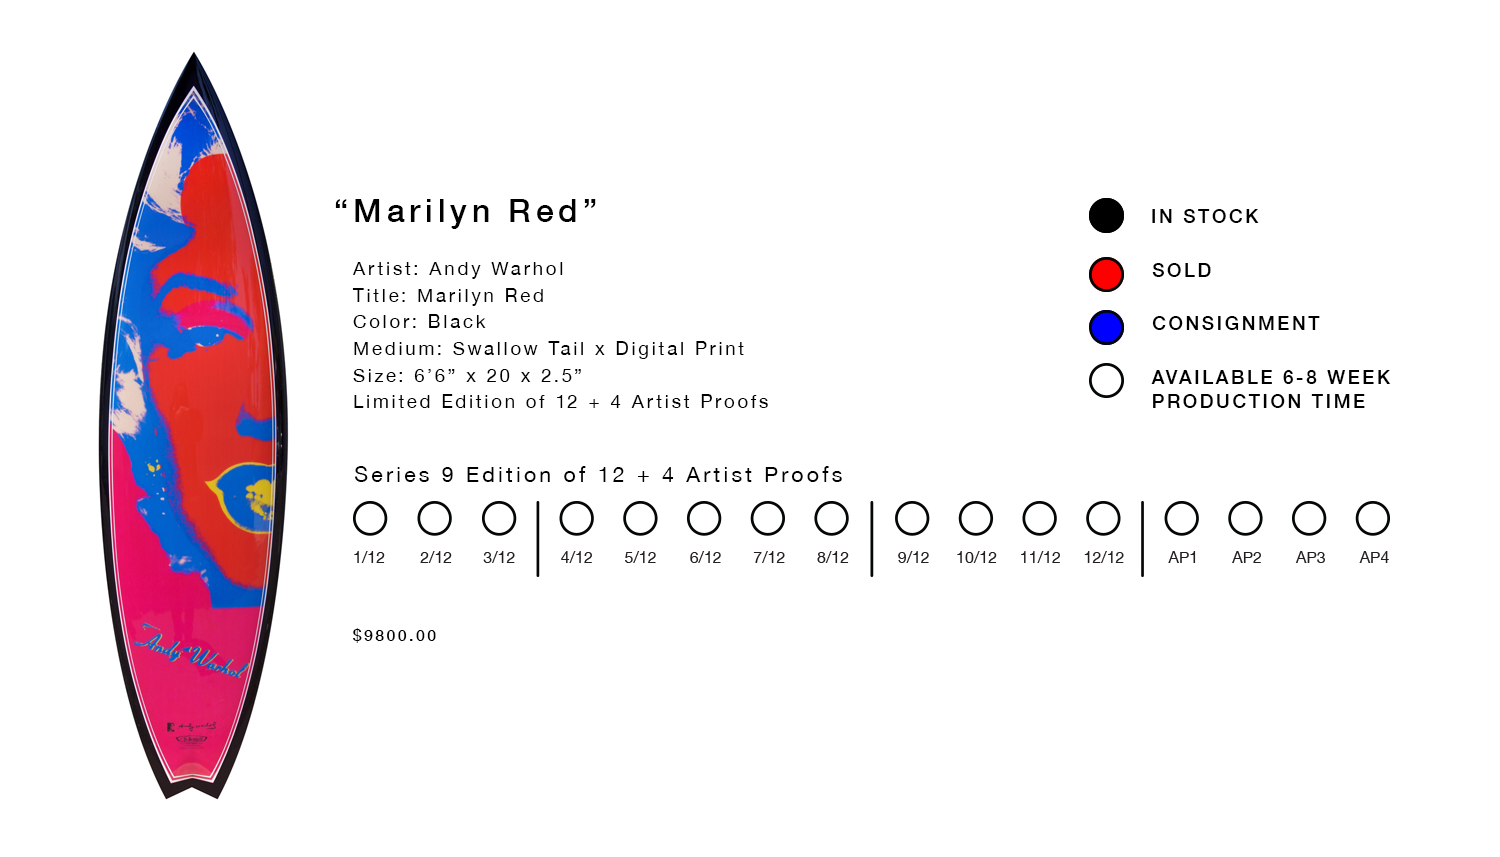 MARILYN_RED_BLACK_AVAIL.png